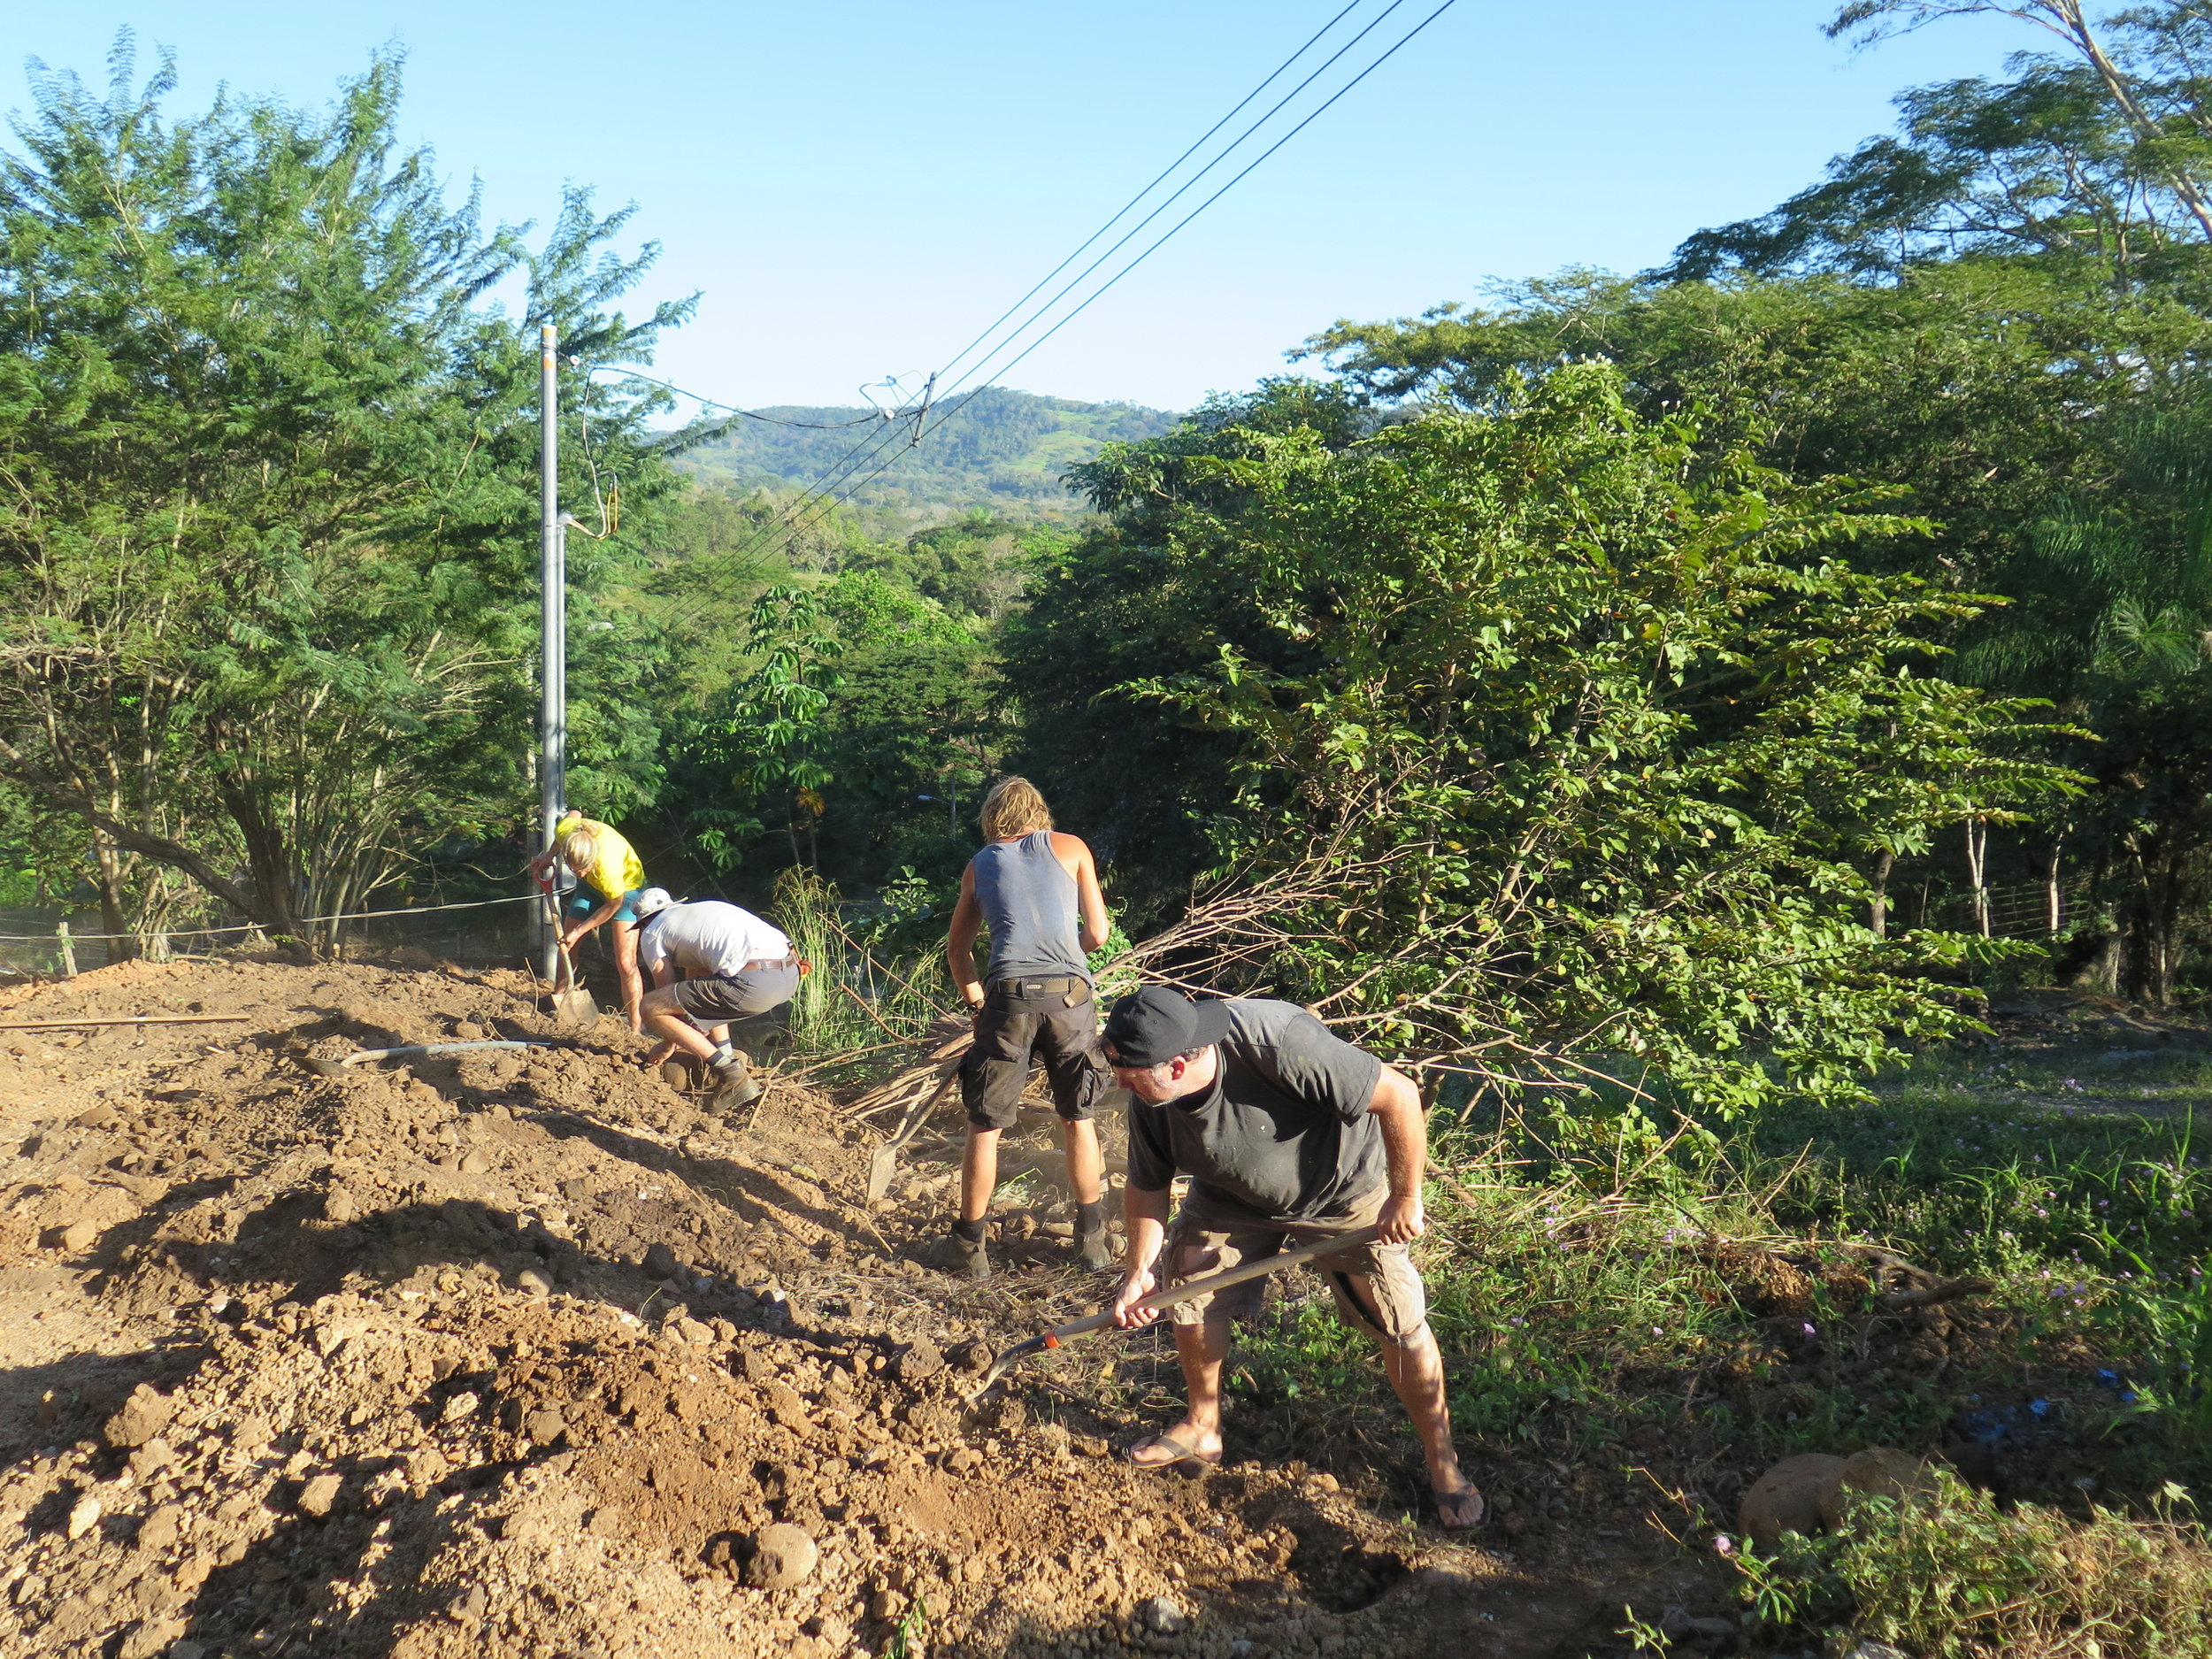 The view from Pancho's house as the team begin the levelling process.